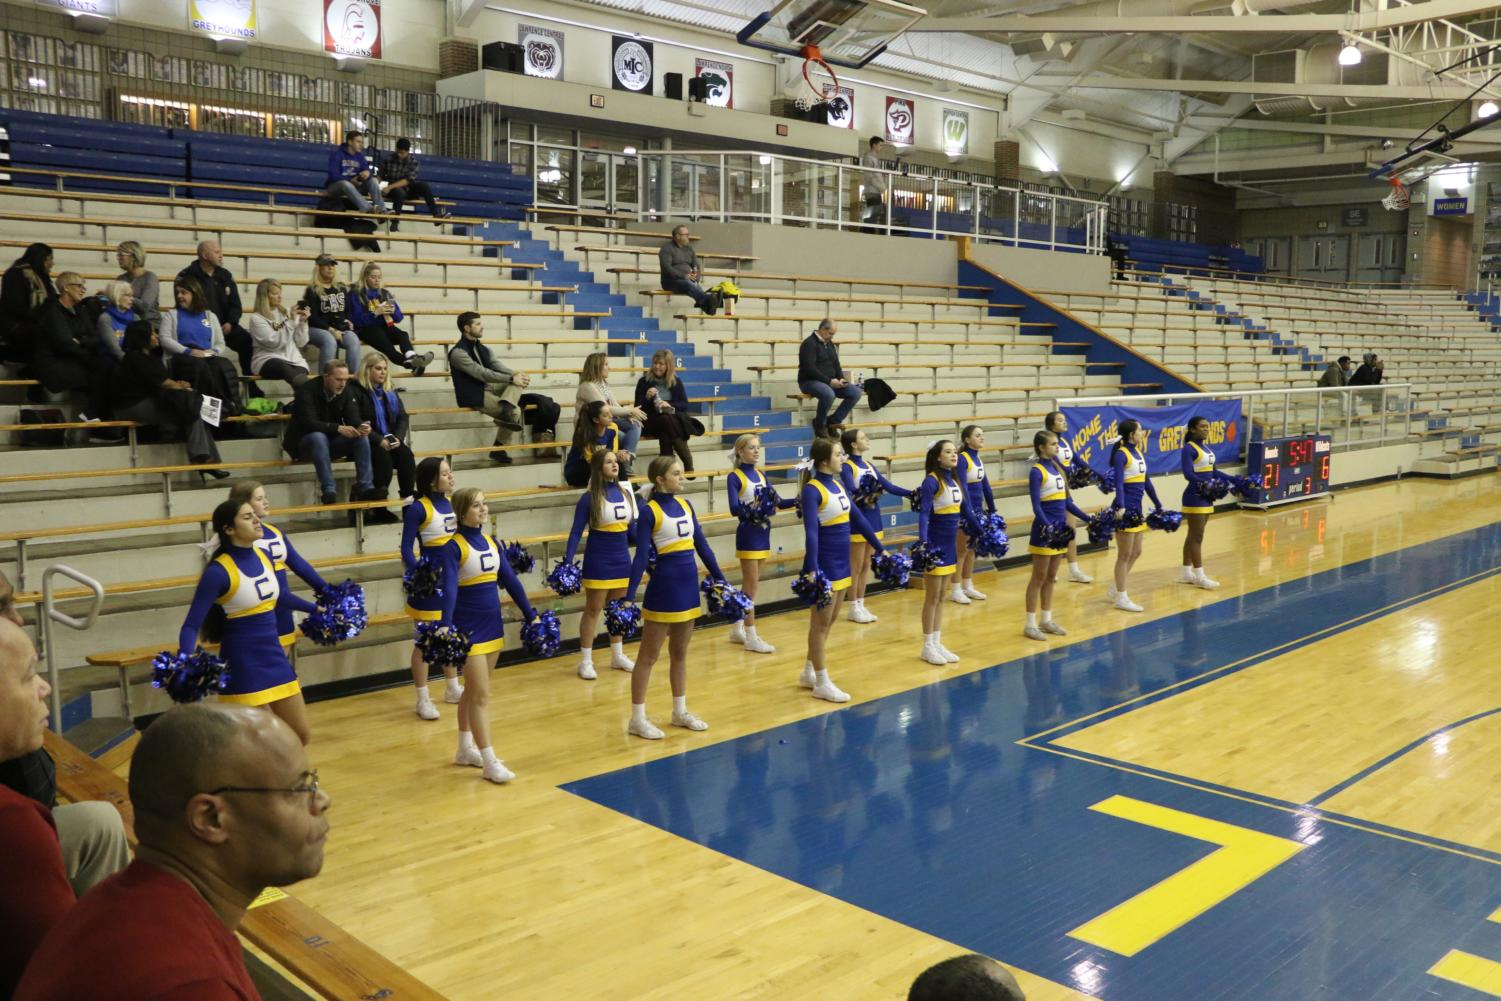 Winter Cheerleading cheers for the women's basketball team in the Eric Clark Activity Center. The team switched between facing the court to cheer on the basketball team and facing the crowd to get them to join in cheering for the basketball team.